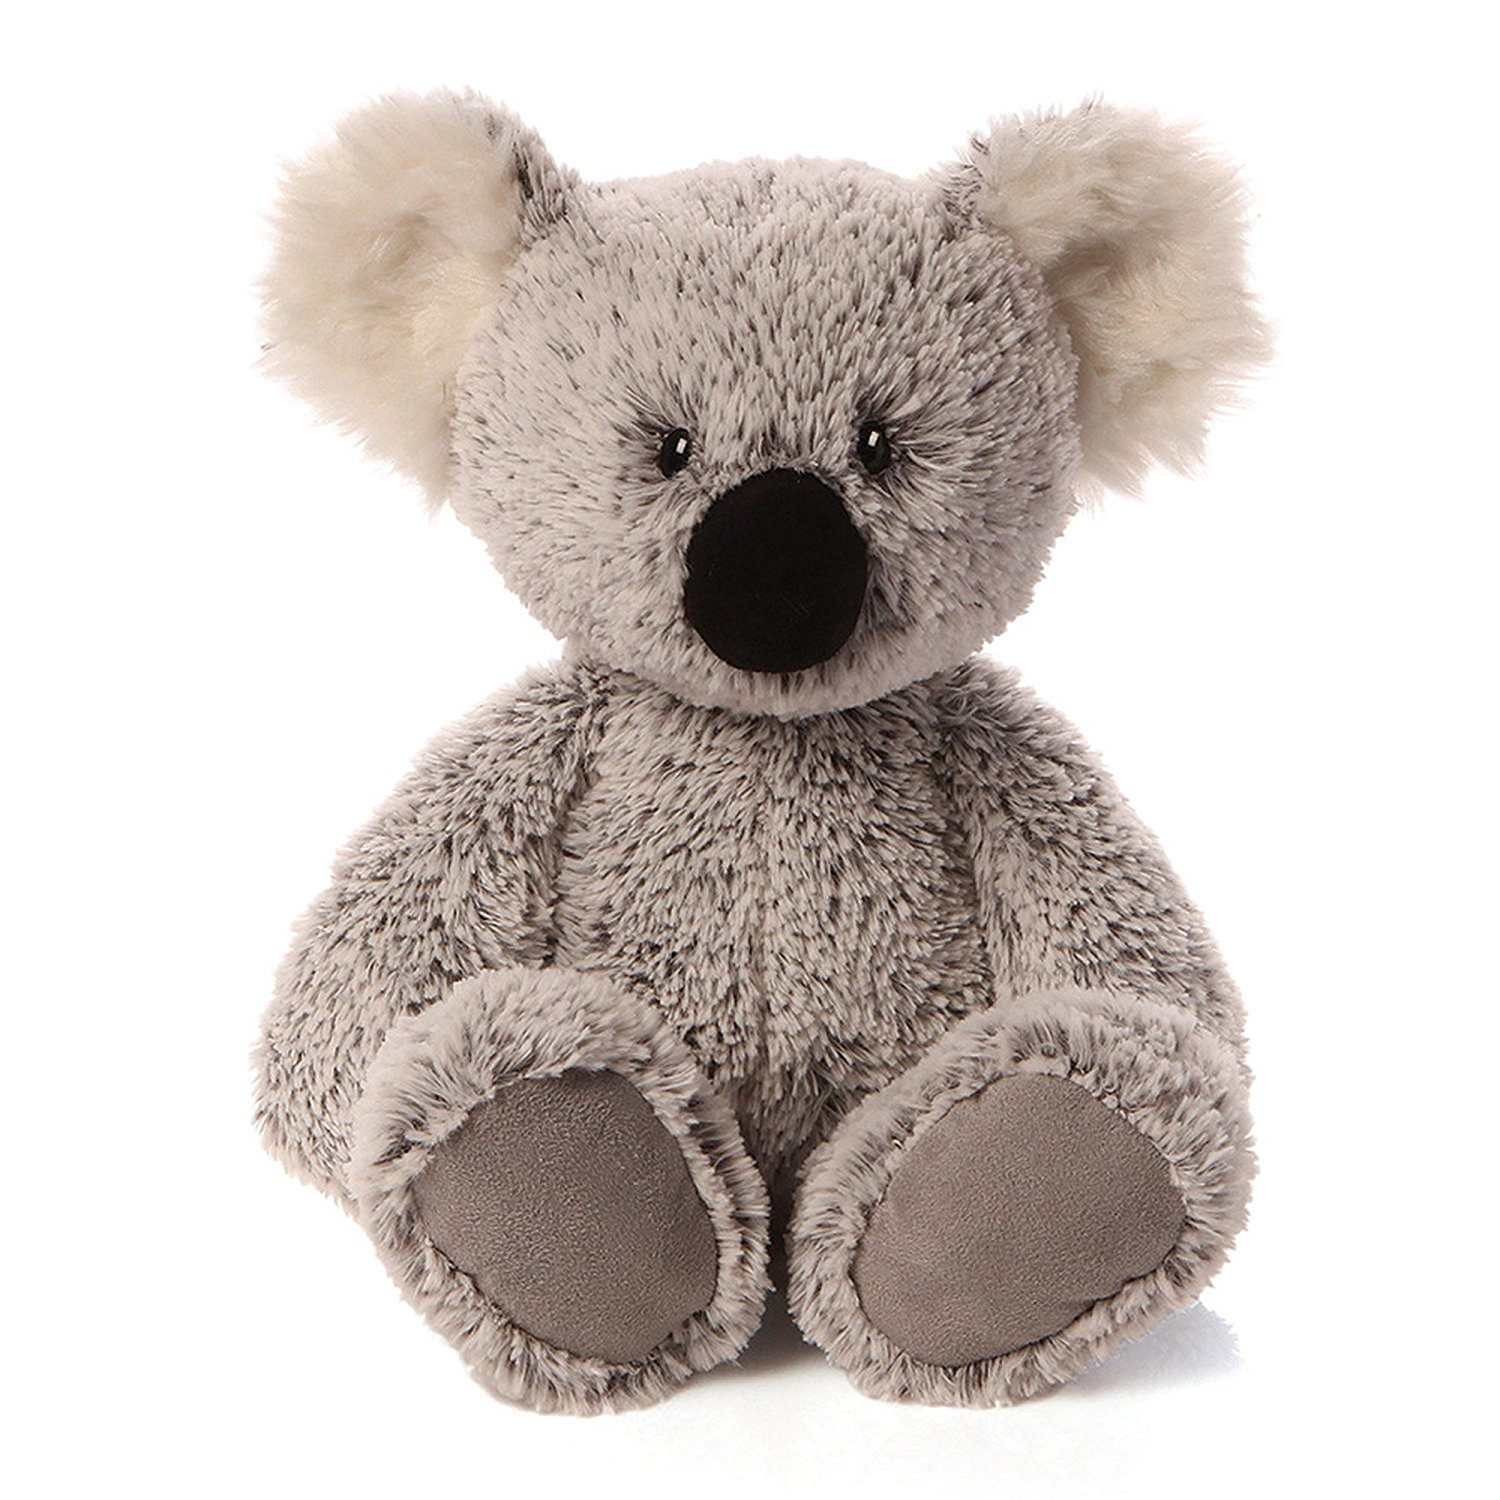 William Koala Bear Stuffed Animal Plush William Koala Plush By Gund